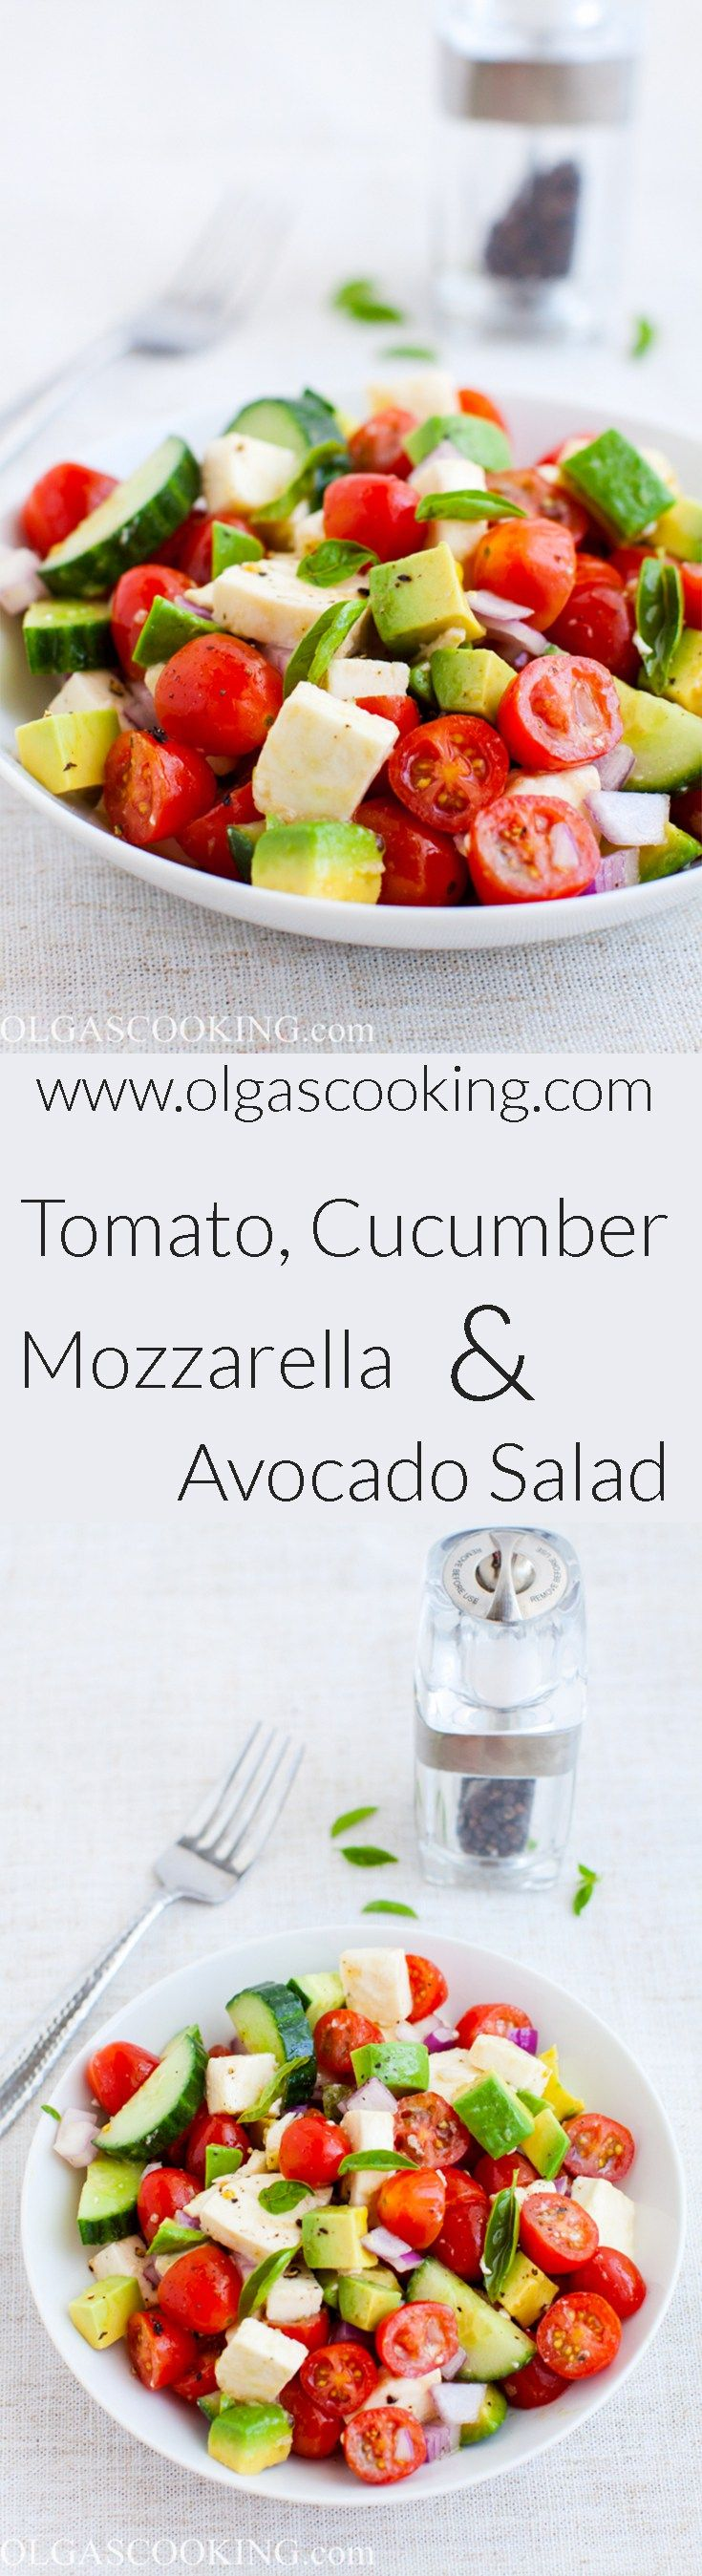 Tomato, Cucumber, Mozzarella and Avocado Salad